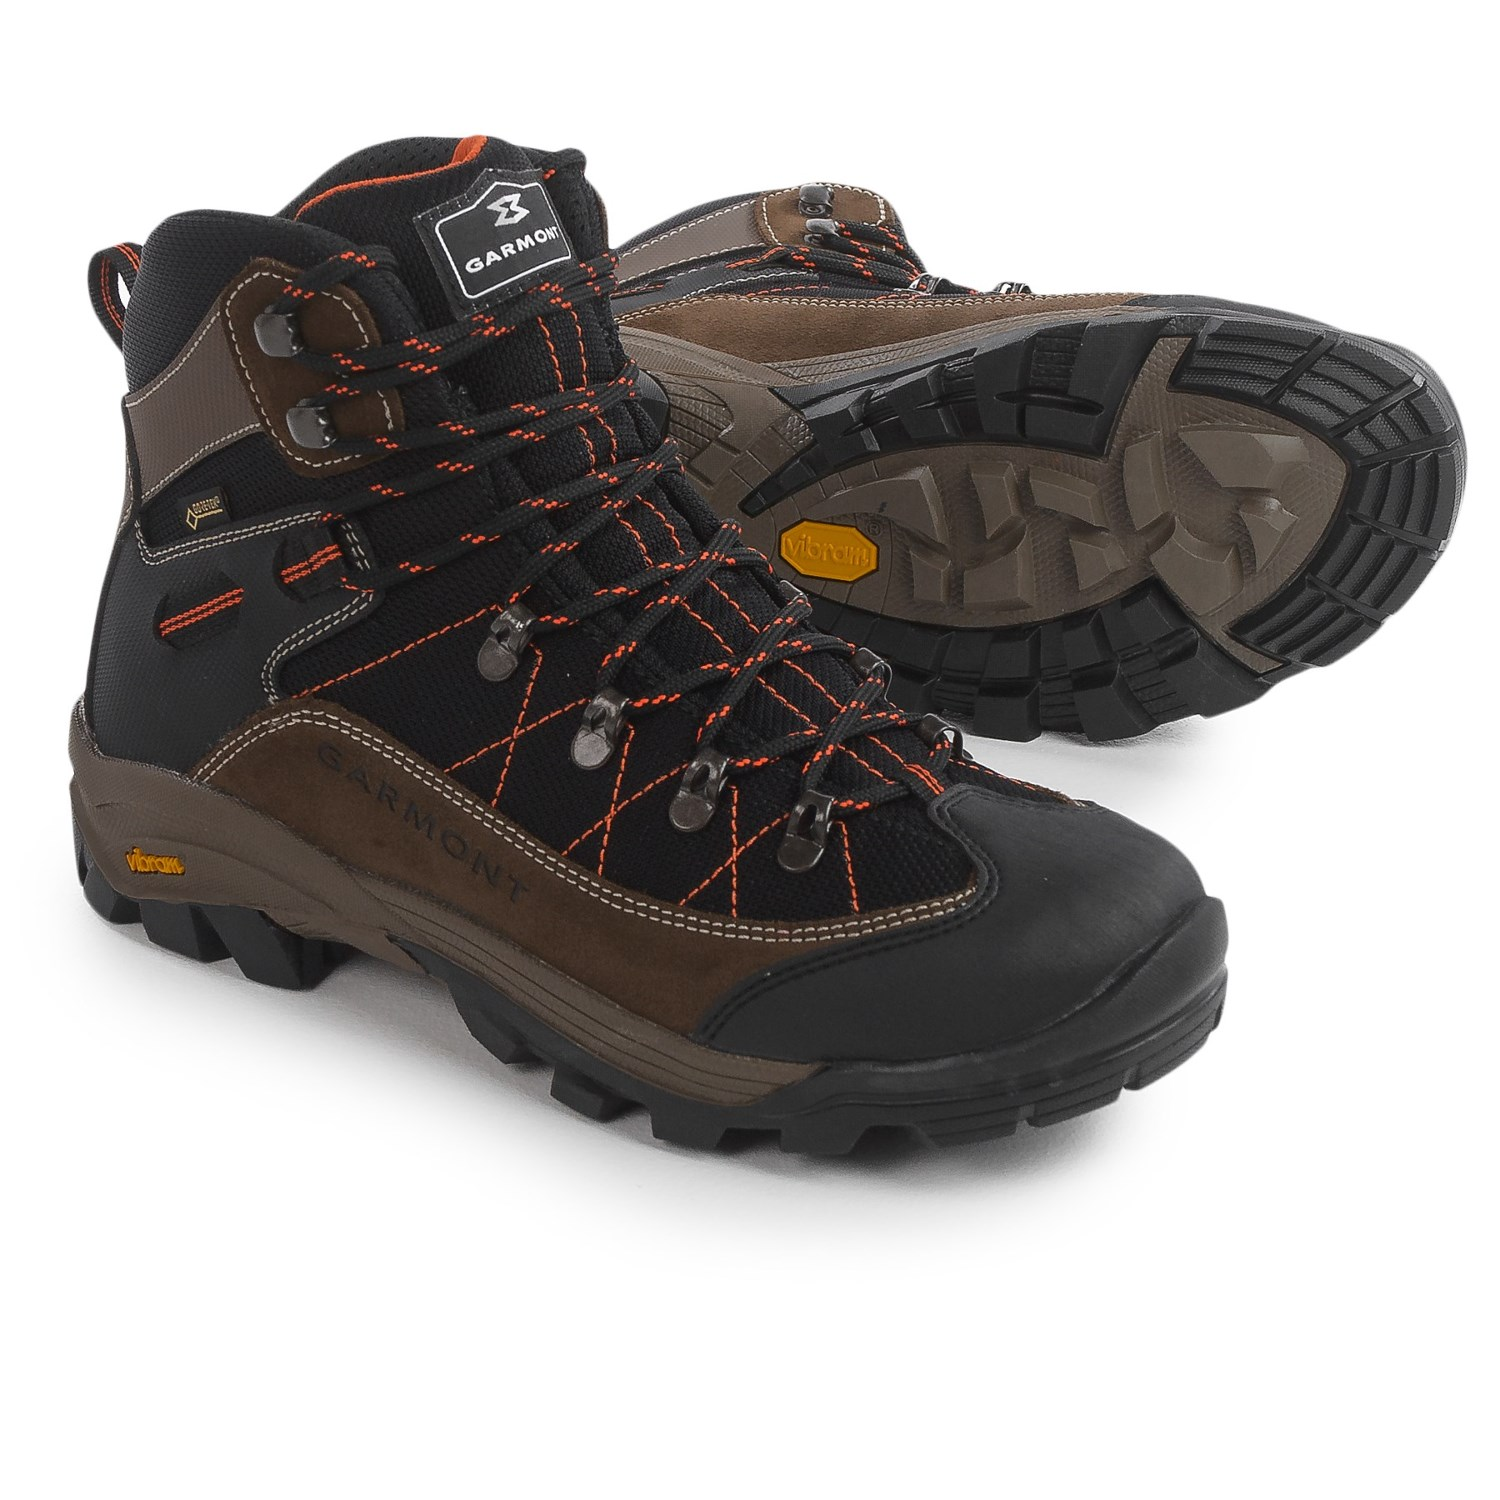 Garmont Gore Tex Hiking Shoes Size